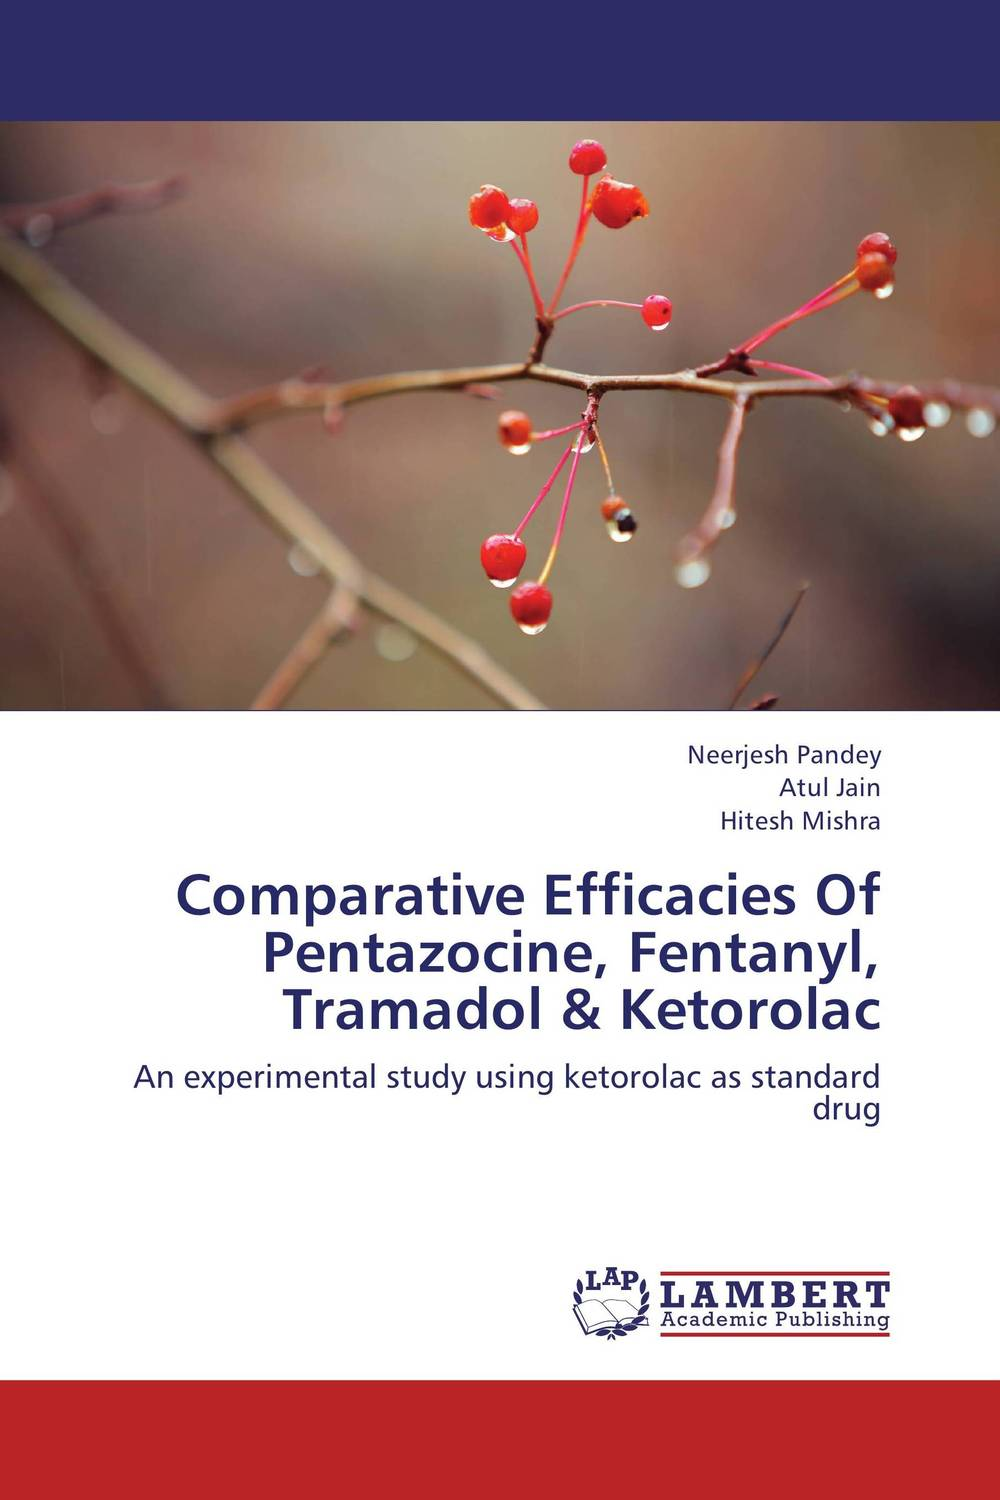 Comparative Efficacies Of Pentazocine, Fentanyl, Tramadol & Ketorolac analgesia in patients with hip fracture